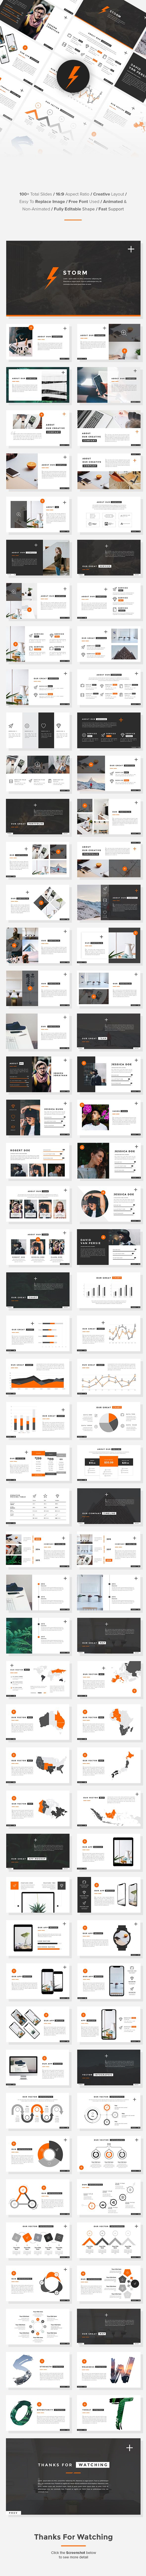 Storm - Creative Google Slides Template | Creative powerpoint ...